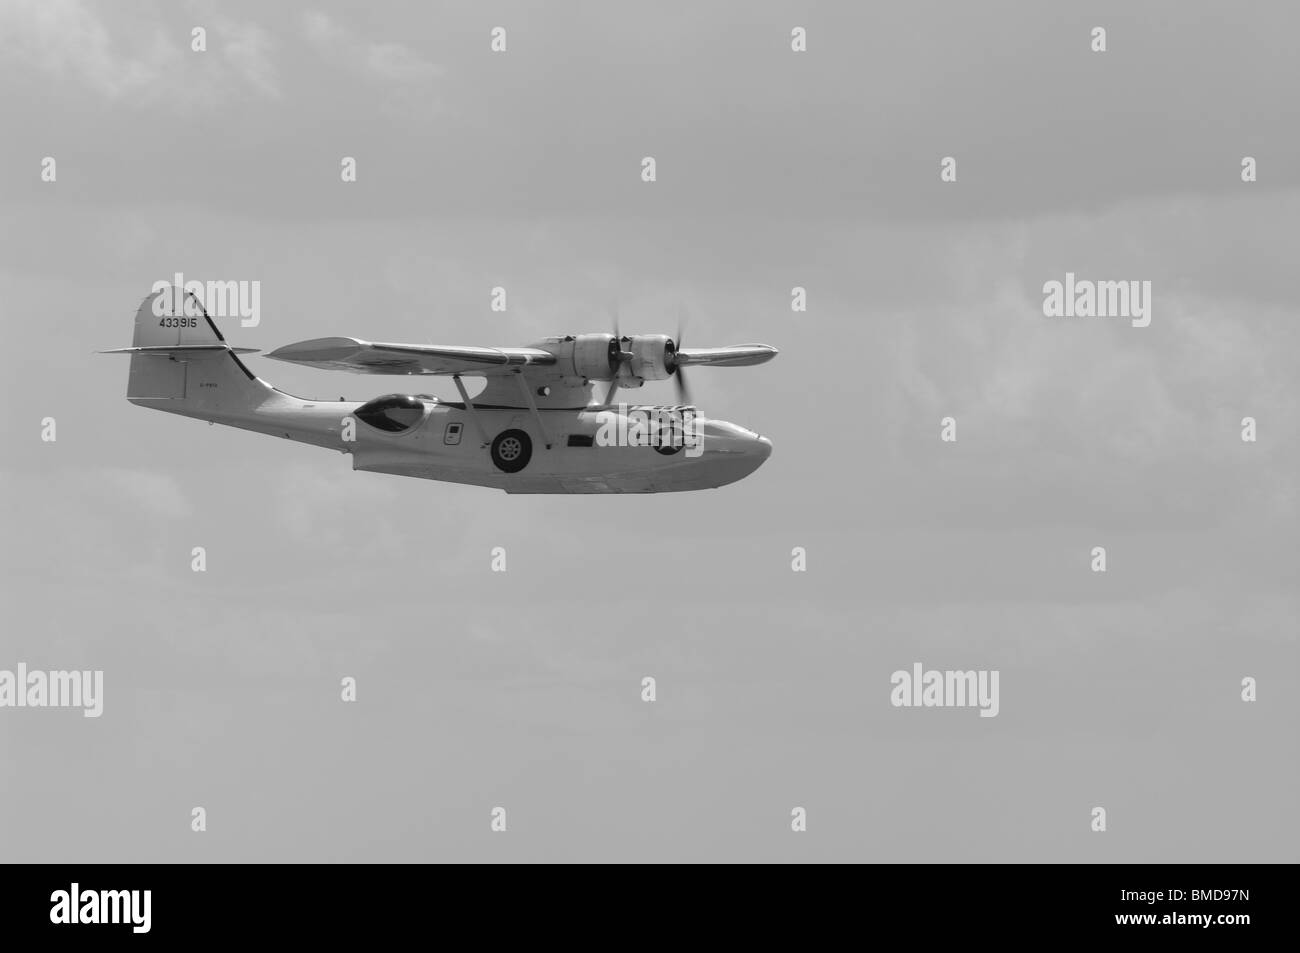 Consolidated PBY Catalina - Stock Image